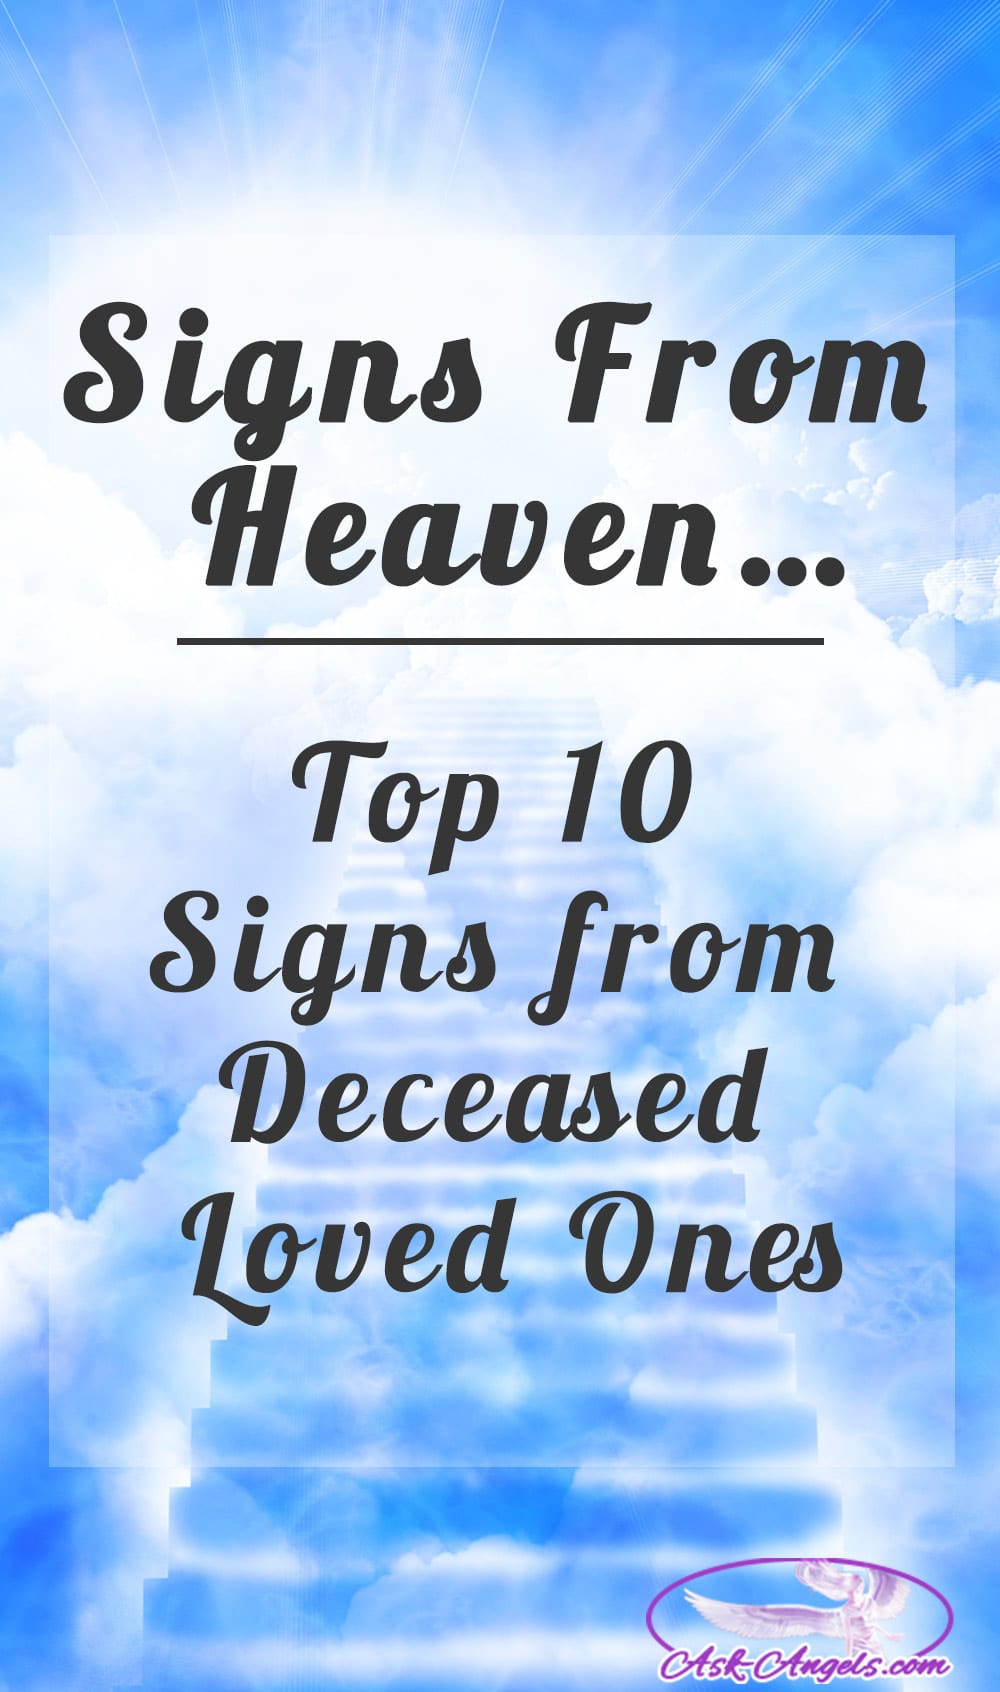 Signs From Heaven Top 10 Signs From Deceased Loved Ones